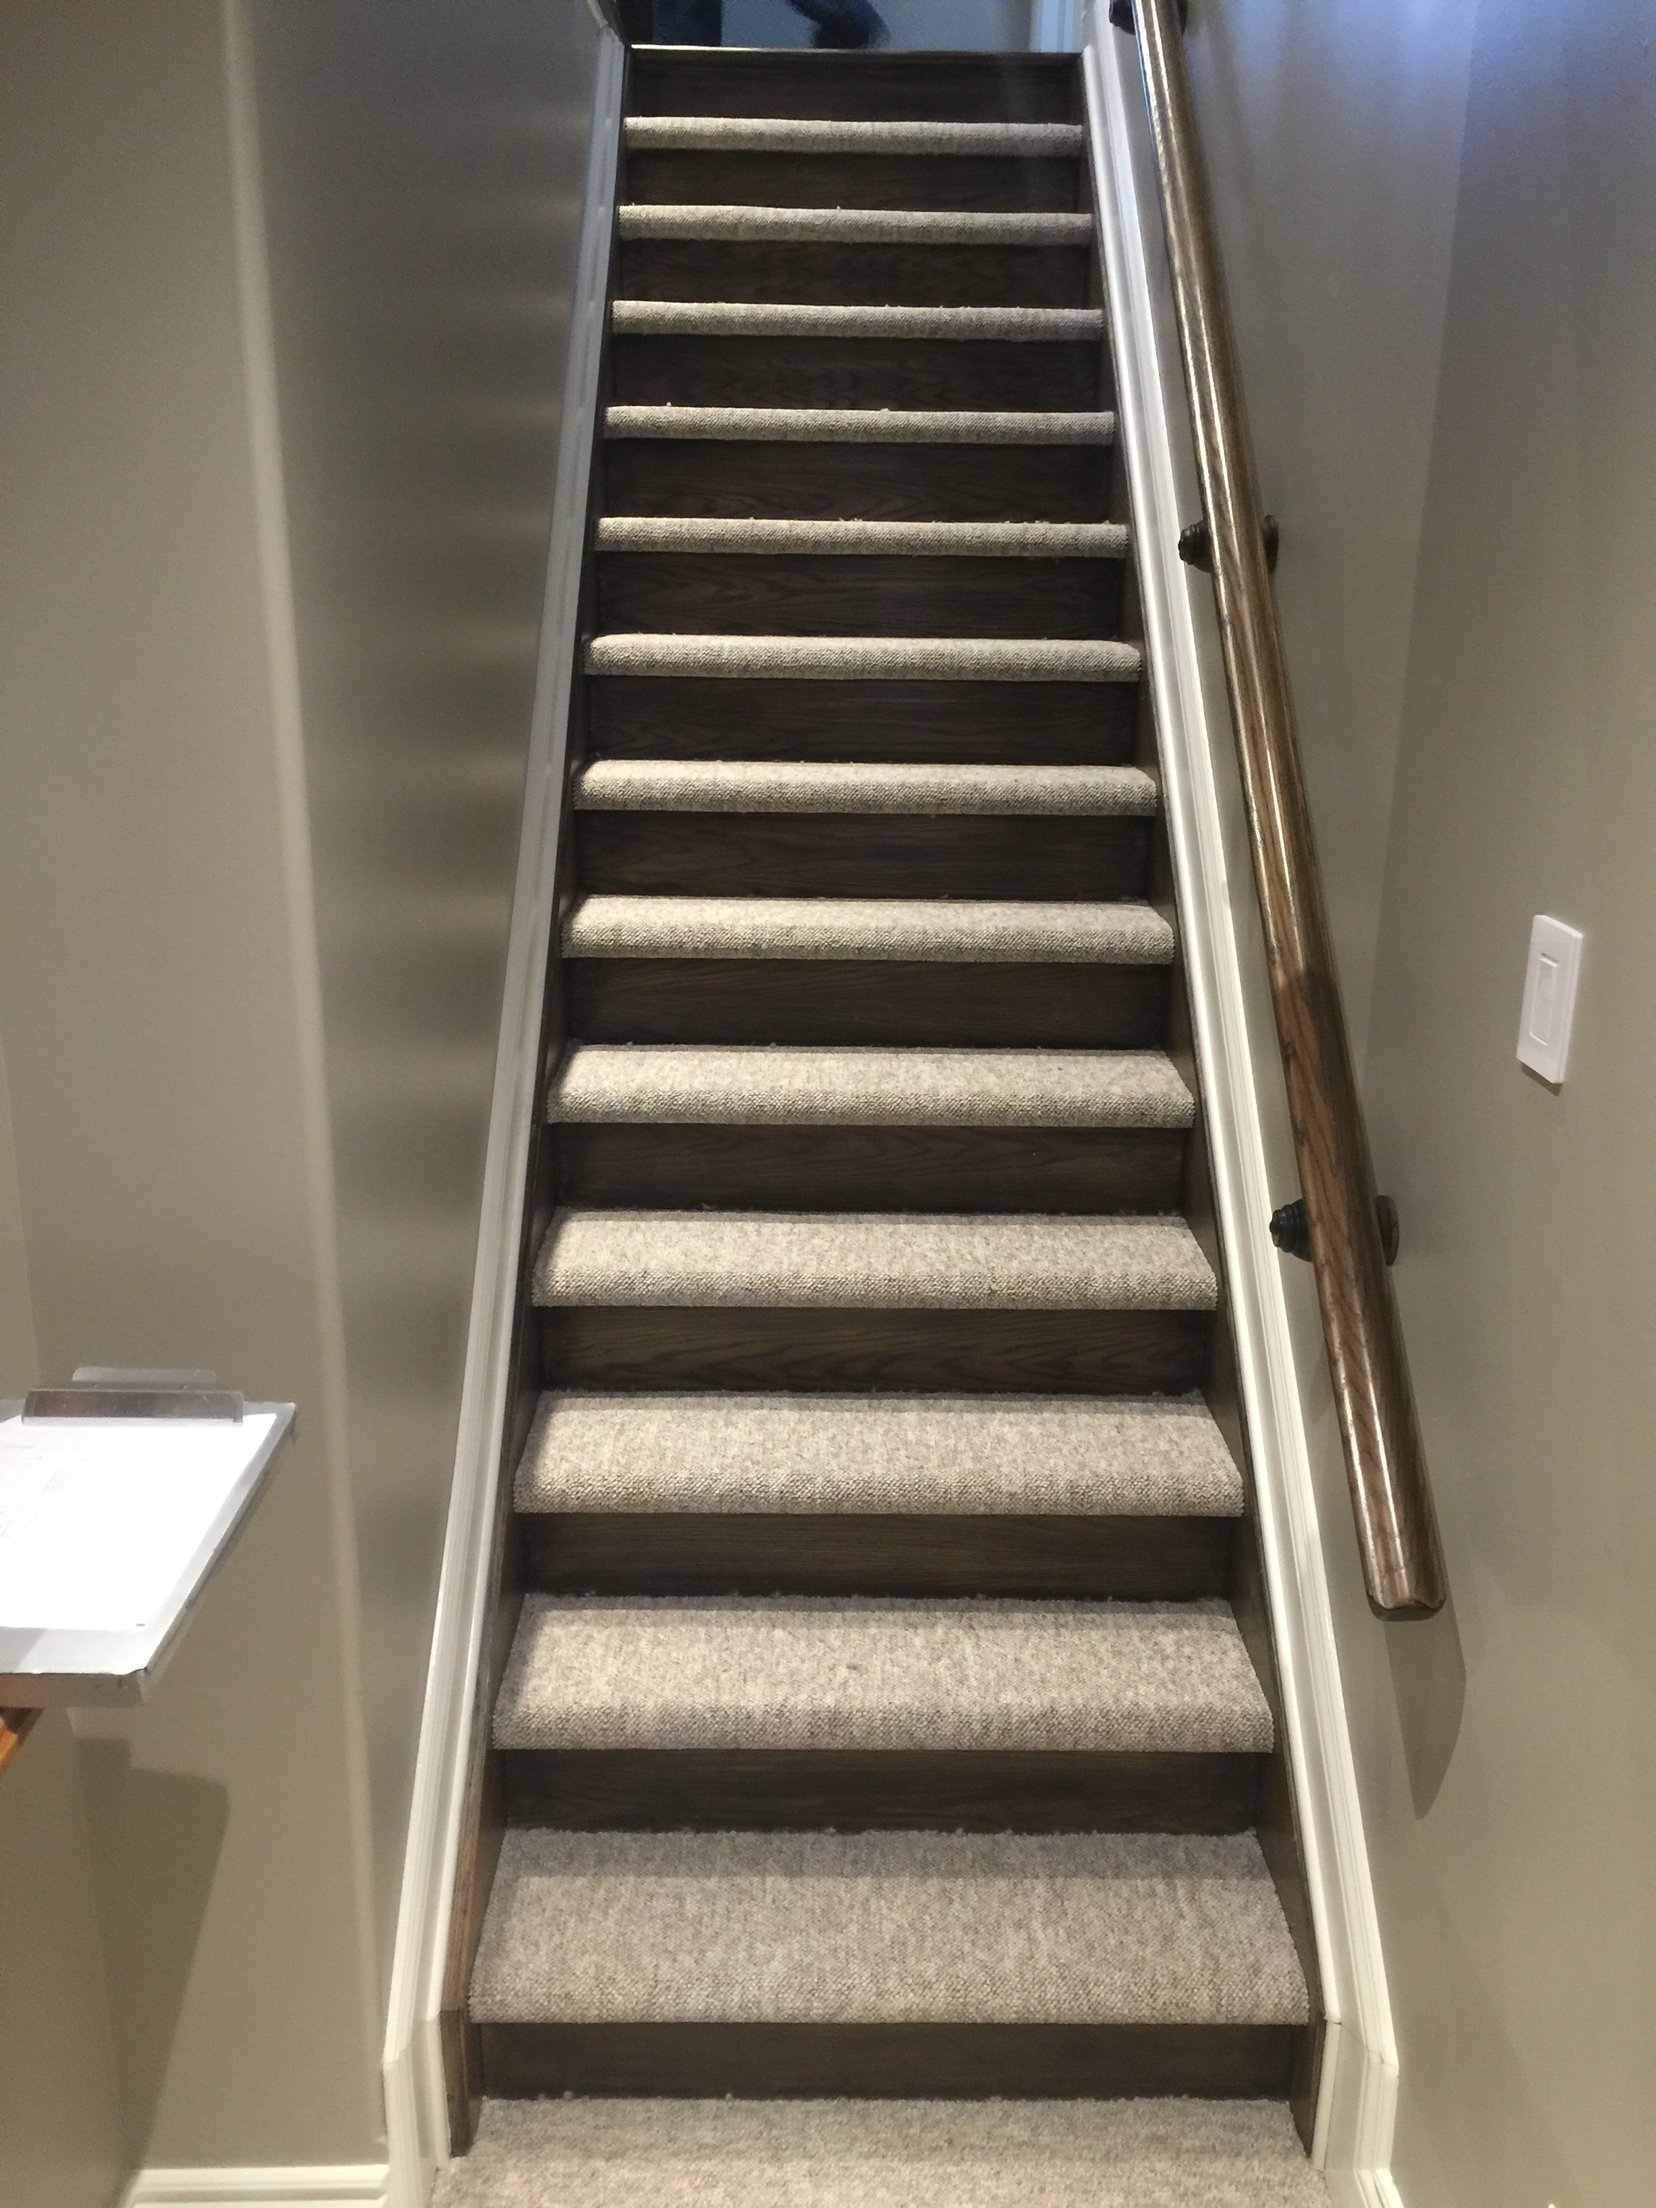 10 Gorgeous Ideas For Stairs Instead Of Carpet Closed Stairs Carpet And  Wood Risers Stairs And